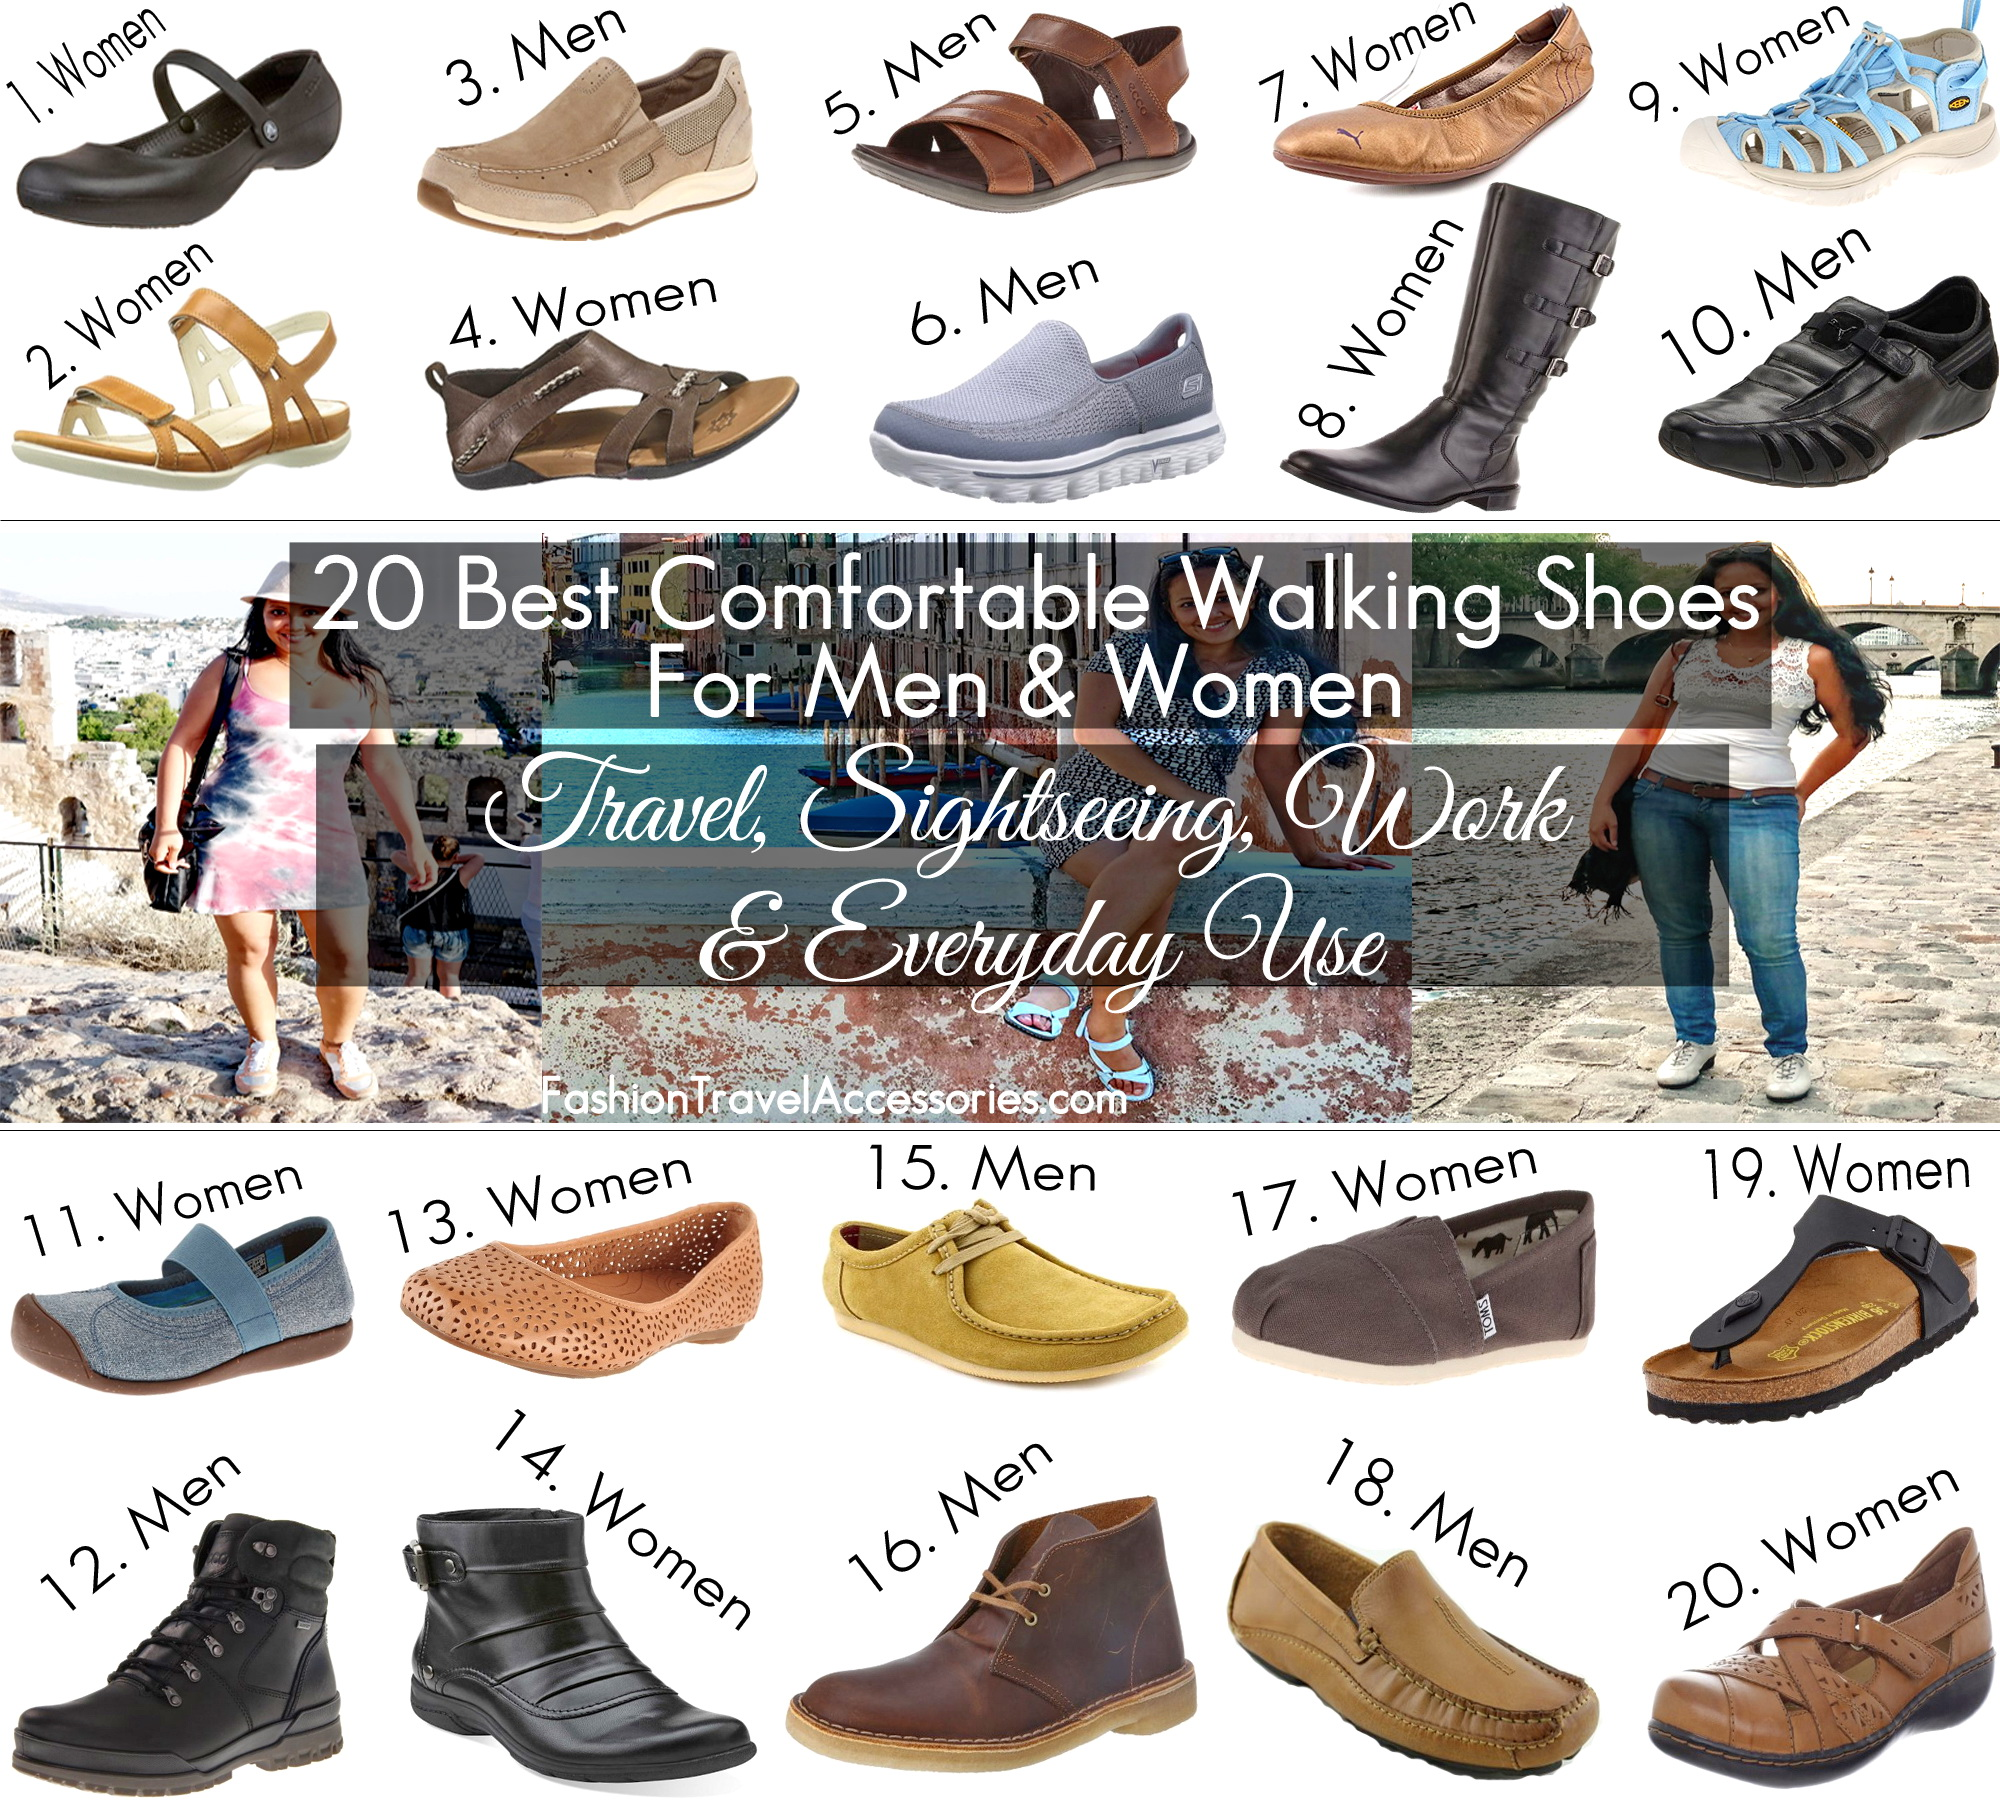 Top Walking Shoes For Europe Women